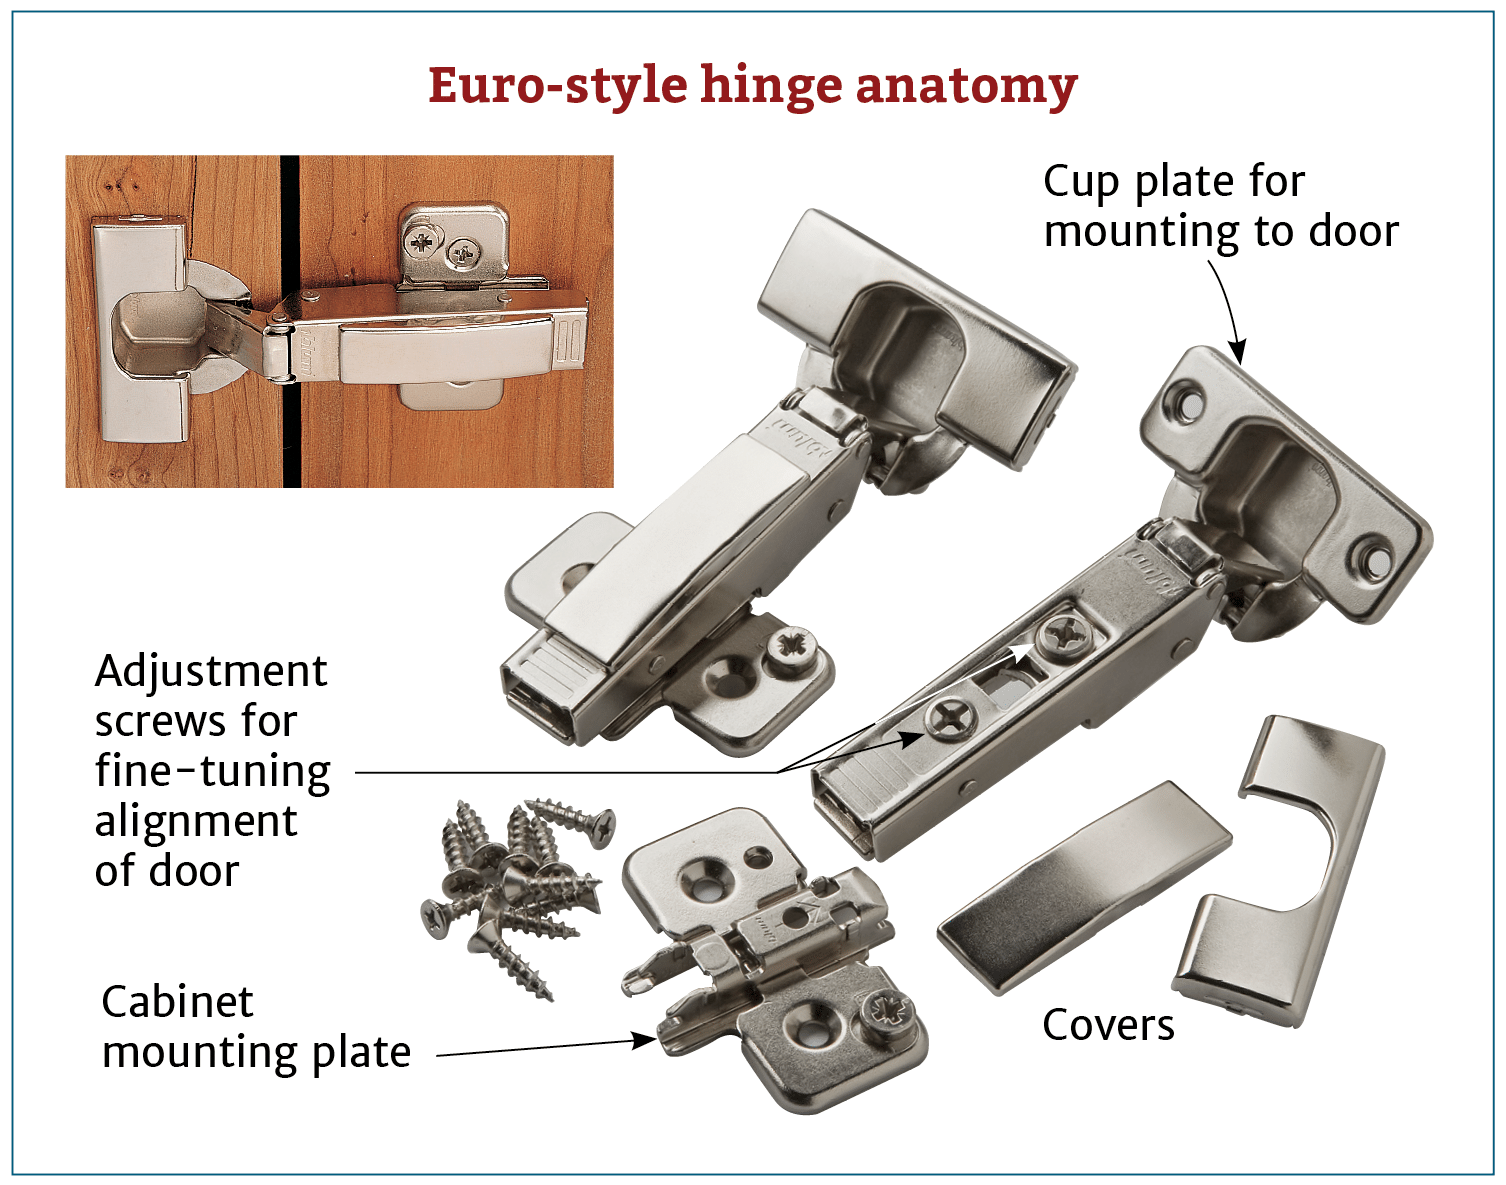 Choosing The Right Cabinet Hinge For Your Project Hinges For Cabinets Kitchen Cabinets Hinges Hinges